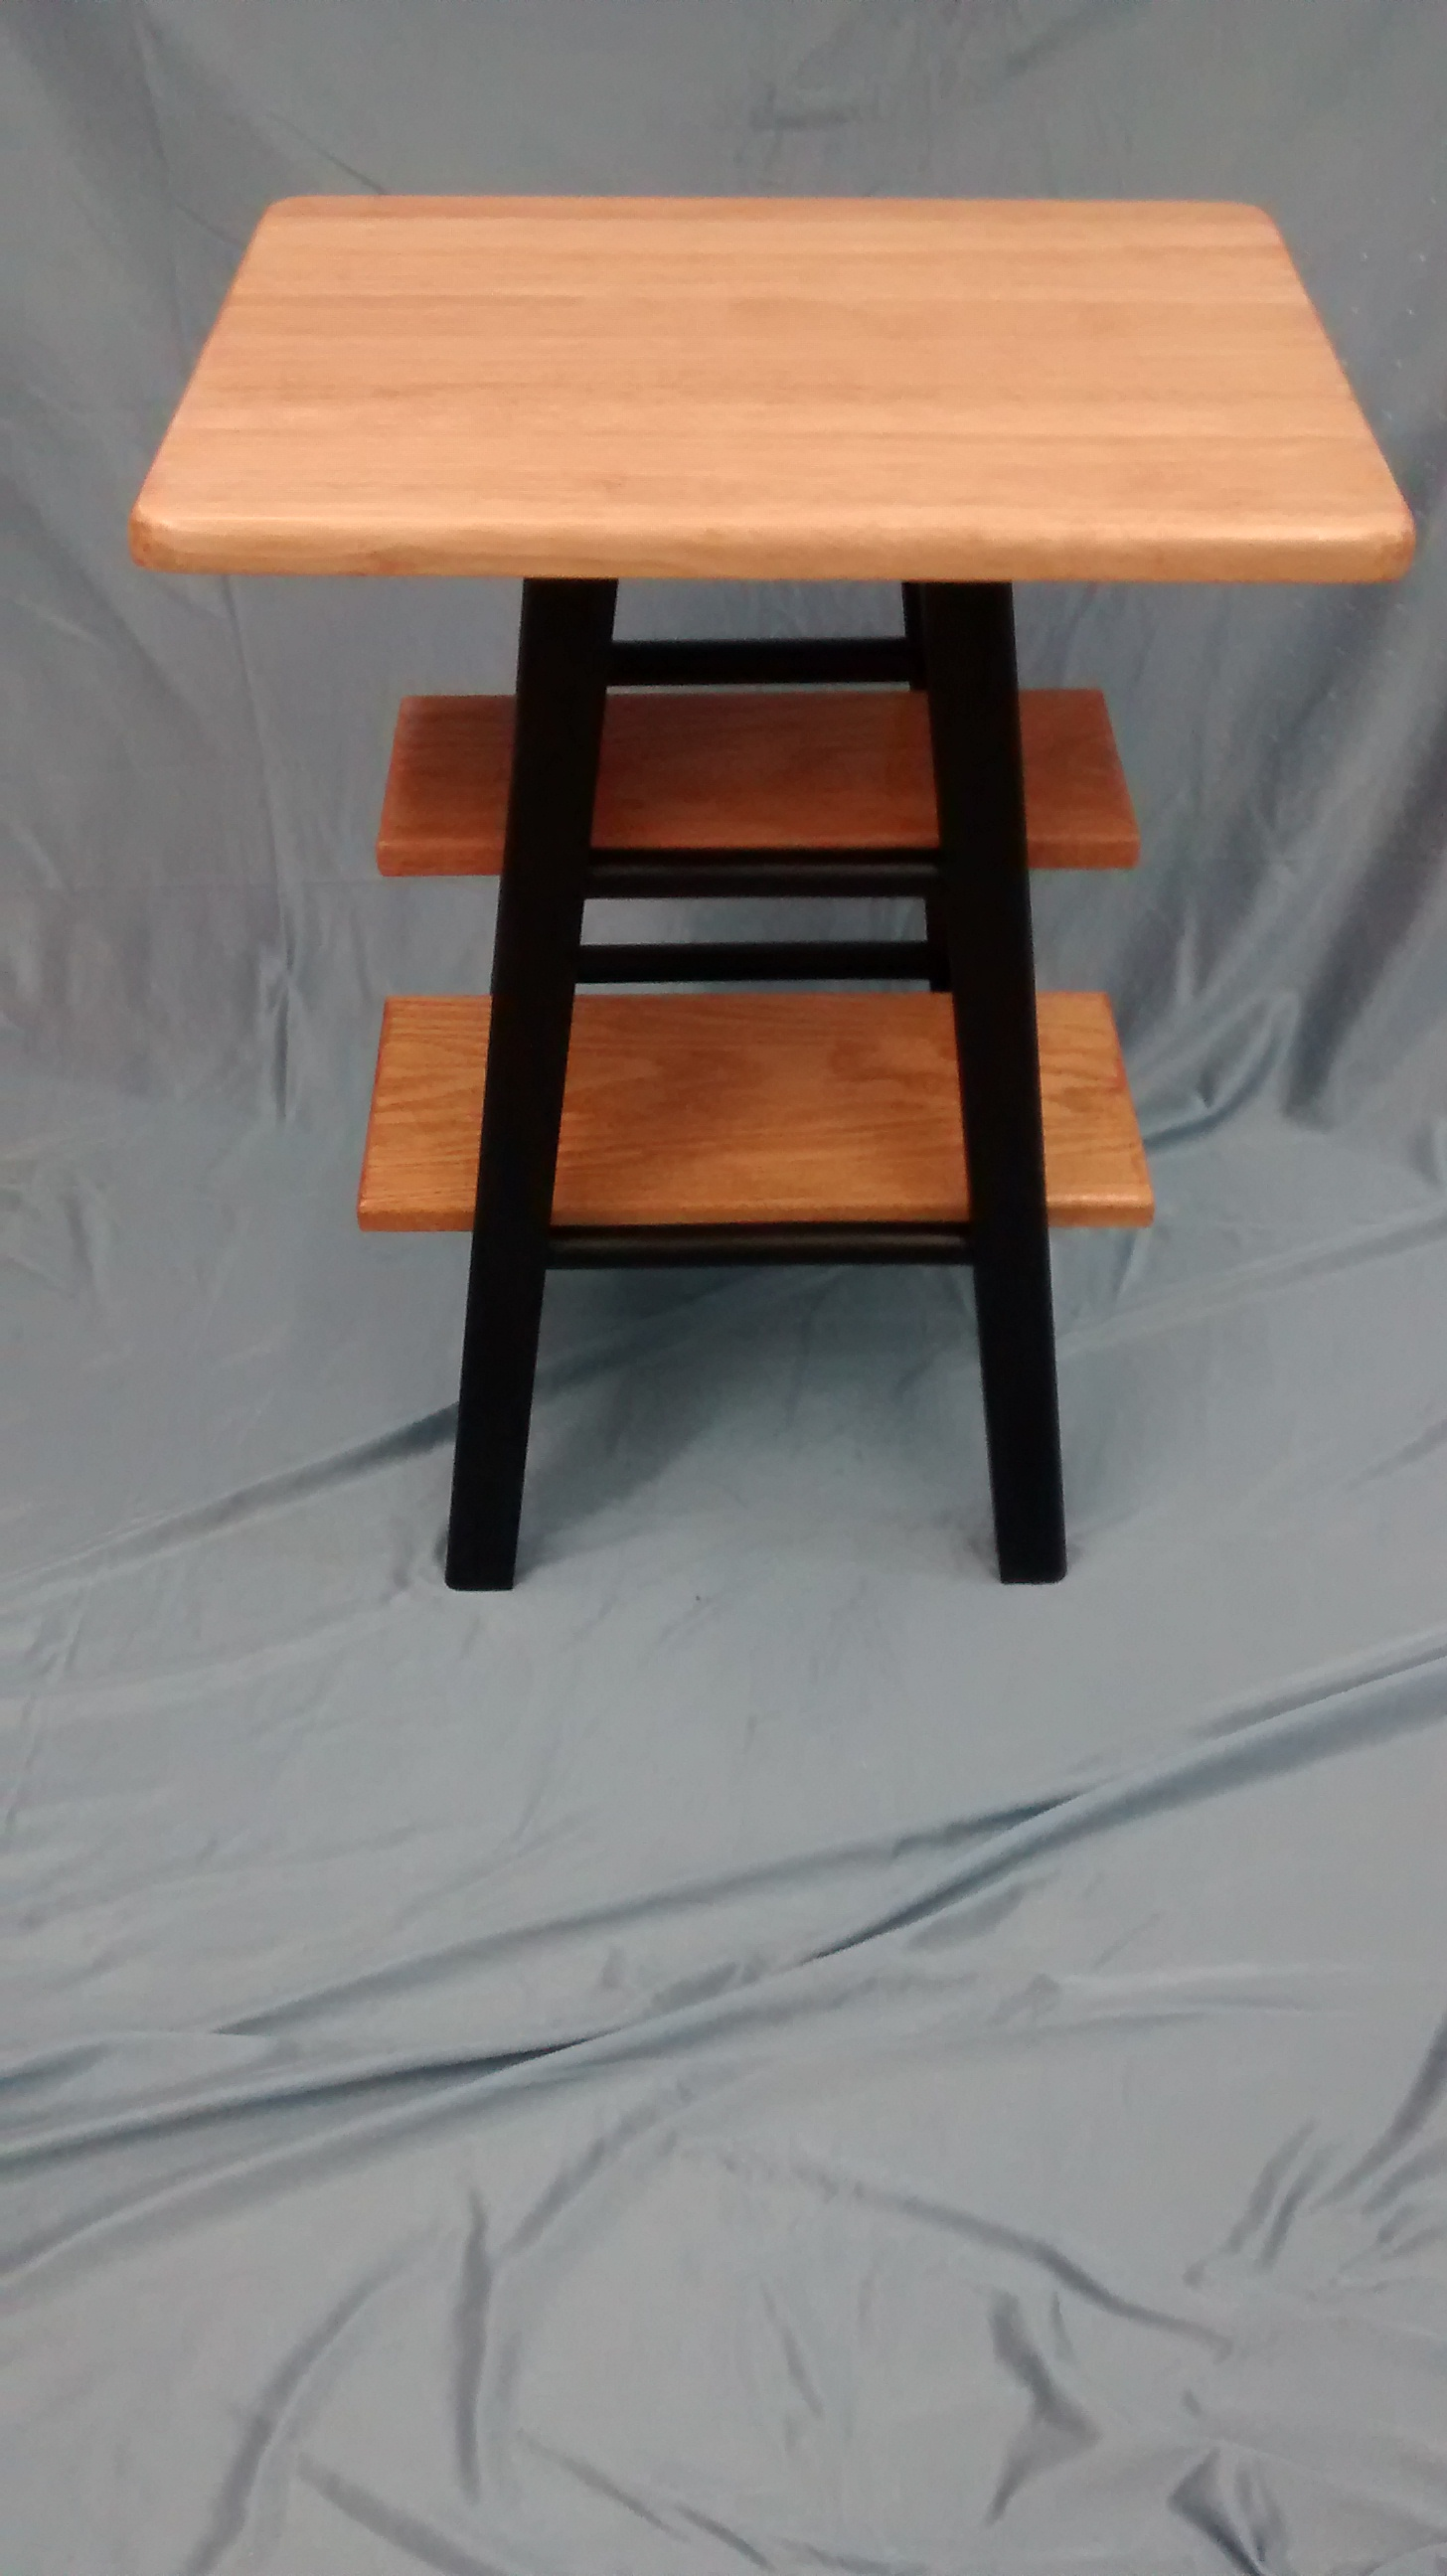 End or Side Table Made from One Wooden Bar Stool and Reclaimed Wood